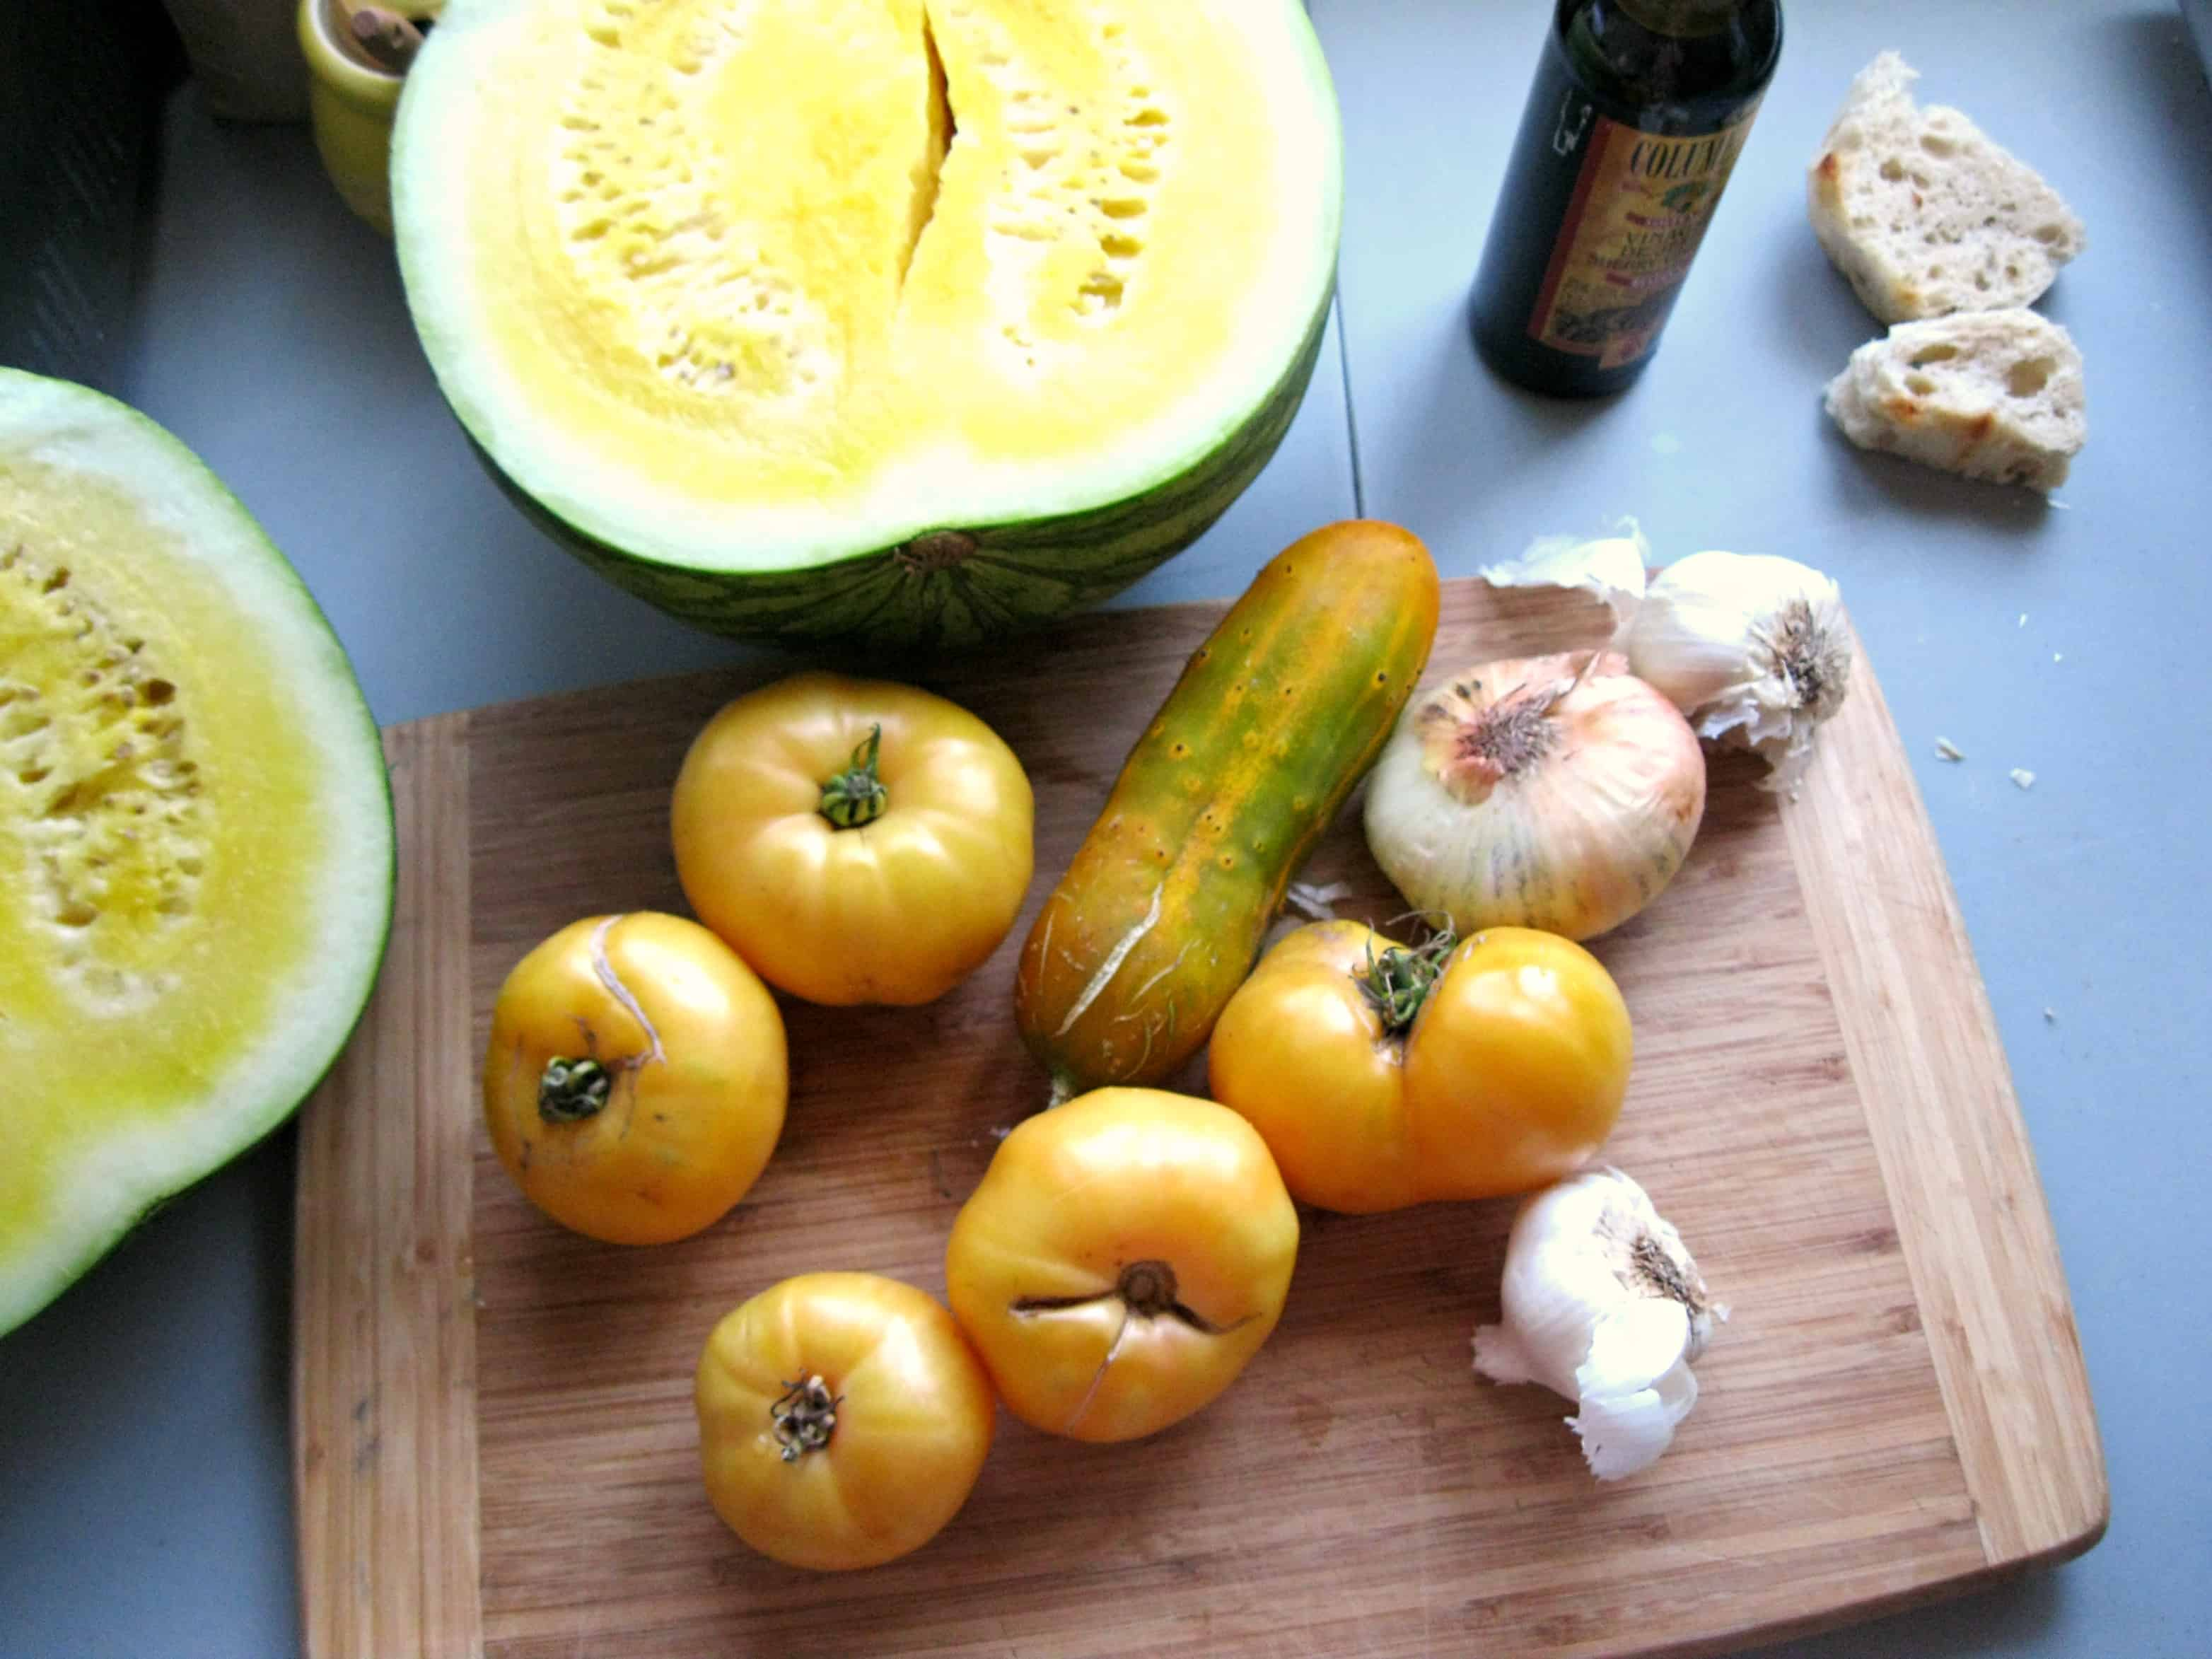 Yellow tomatoes, onions, and yellow watermelon on a cutting board.